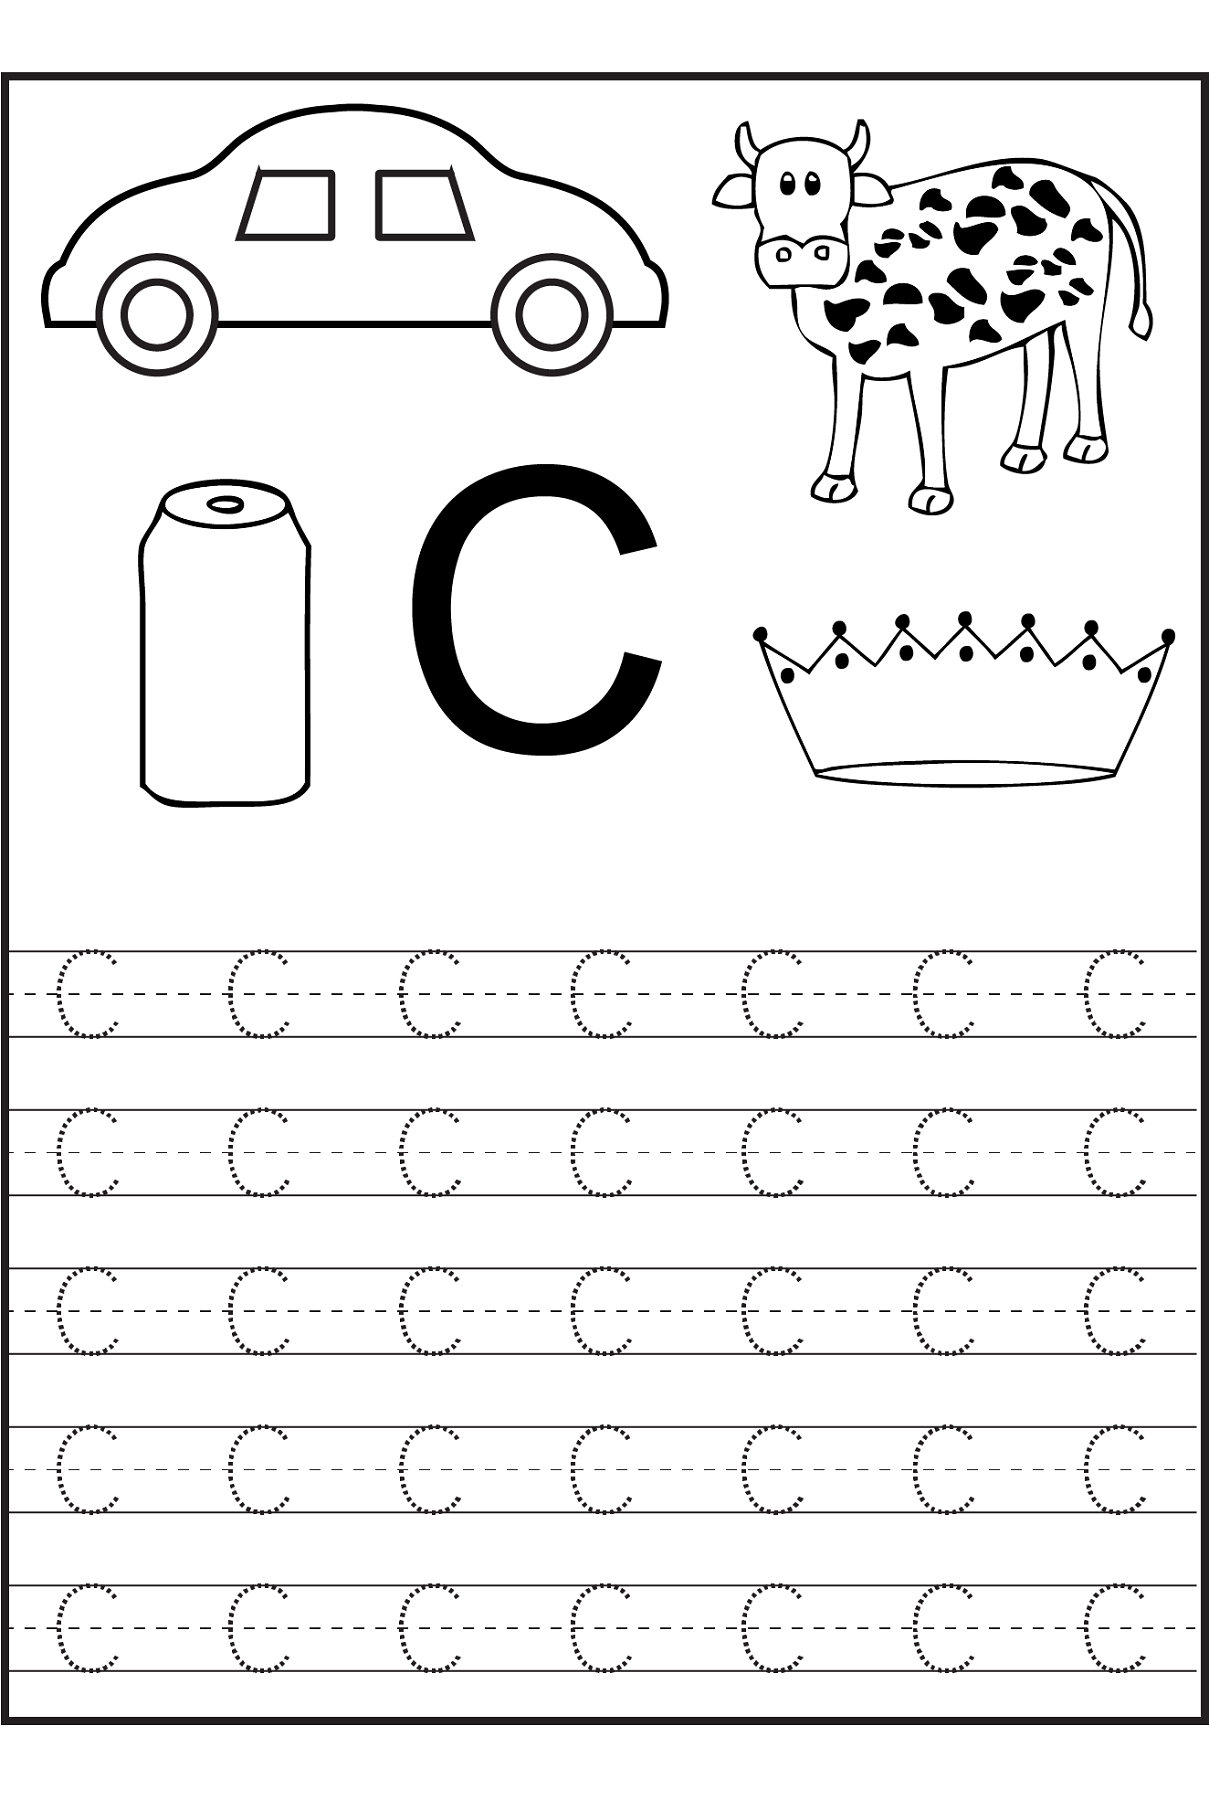 trace the letter c worksheets alphabet and numbers learning preschool worksheets letter c. Black Bedroom Furniture Sets. Home Design Ideas